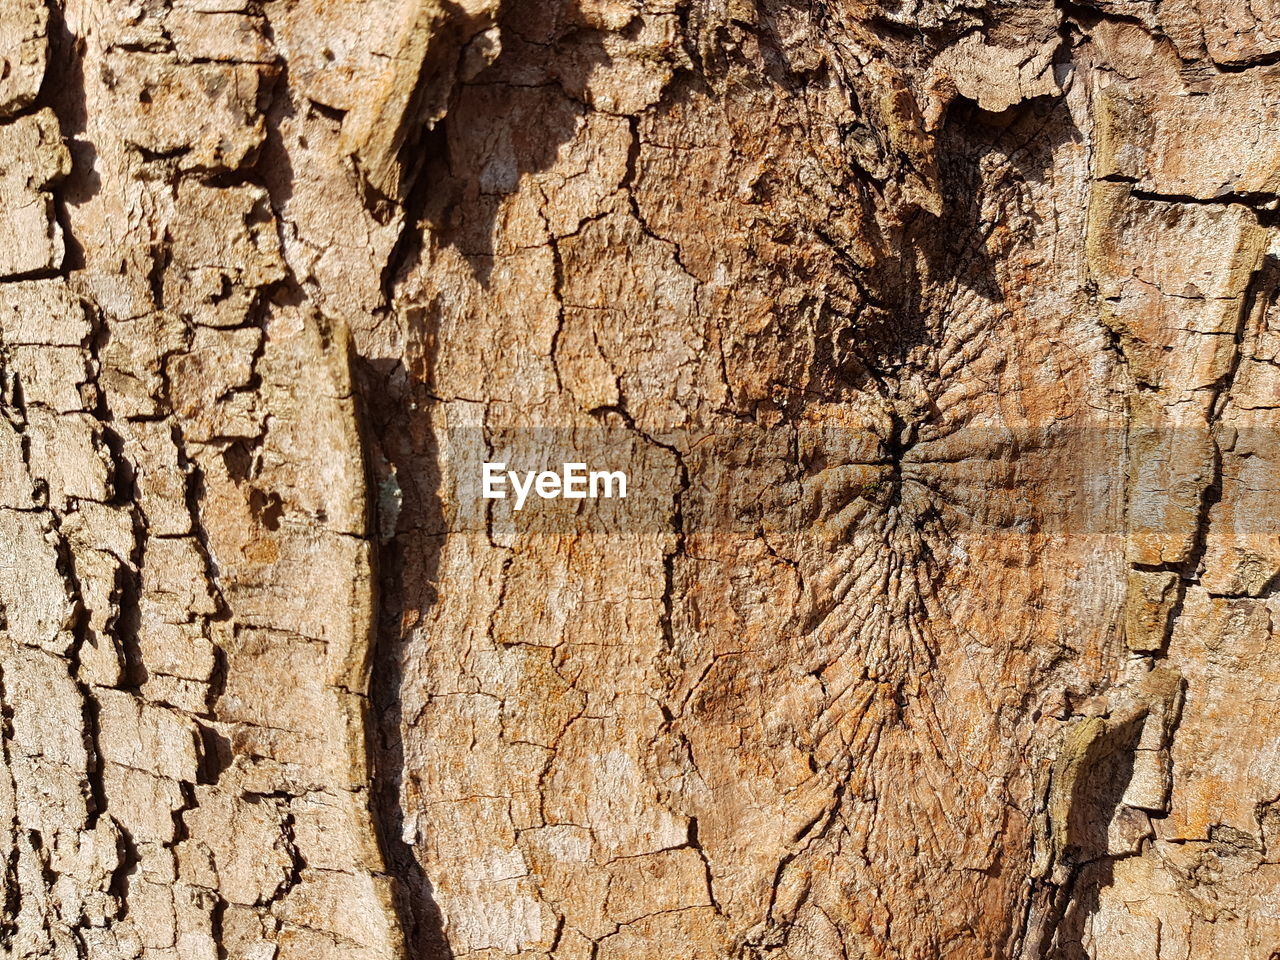 textured, backgrounds, full frame, tree, tree trunk, trunk, wood - material, close-up, pattern, no people, rough, plant, cracked, plant bark, weathered, nature, natural pattern, brown, day, bark, outdoors, textured effect, abstract backgrounds